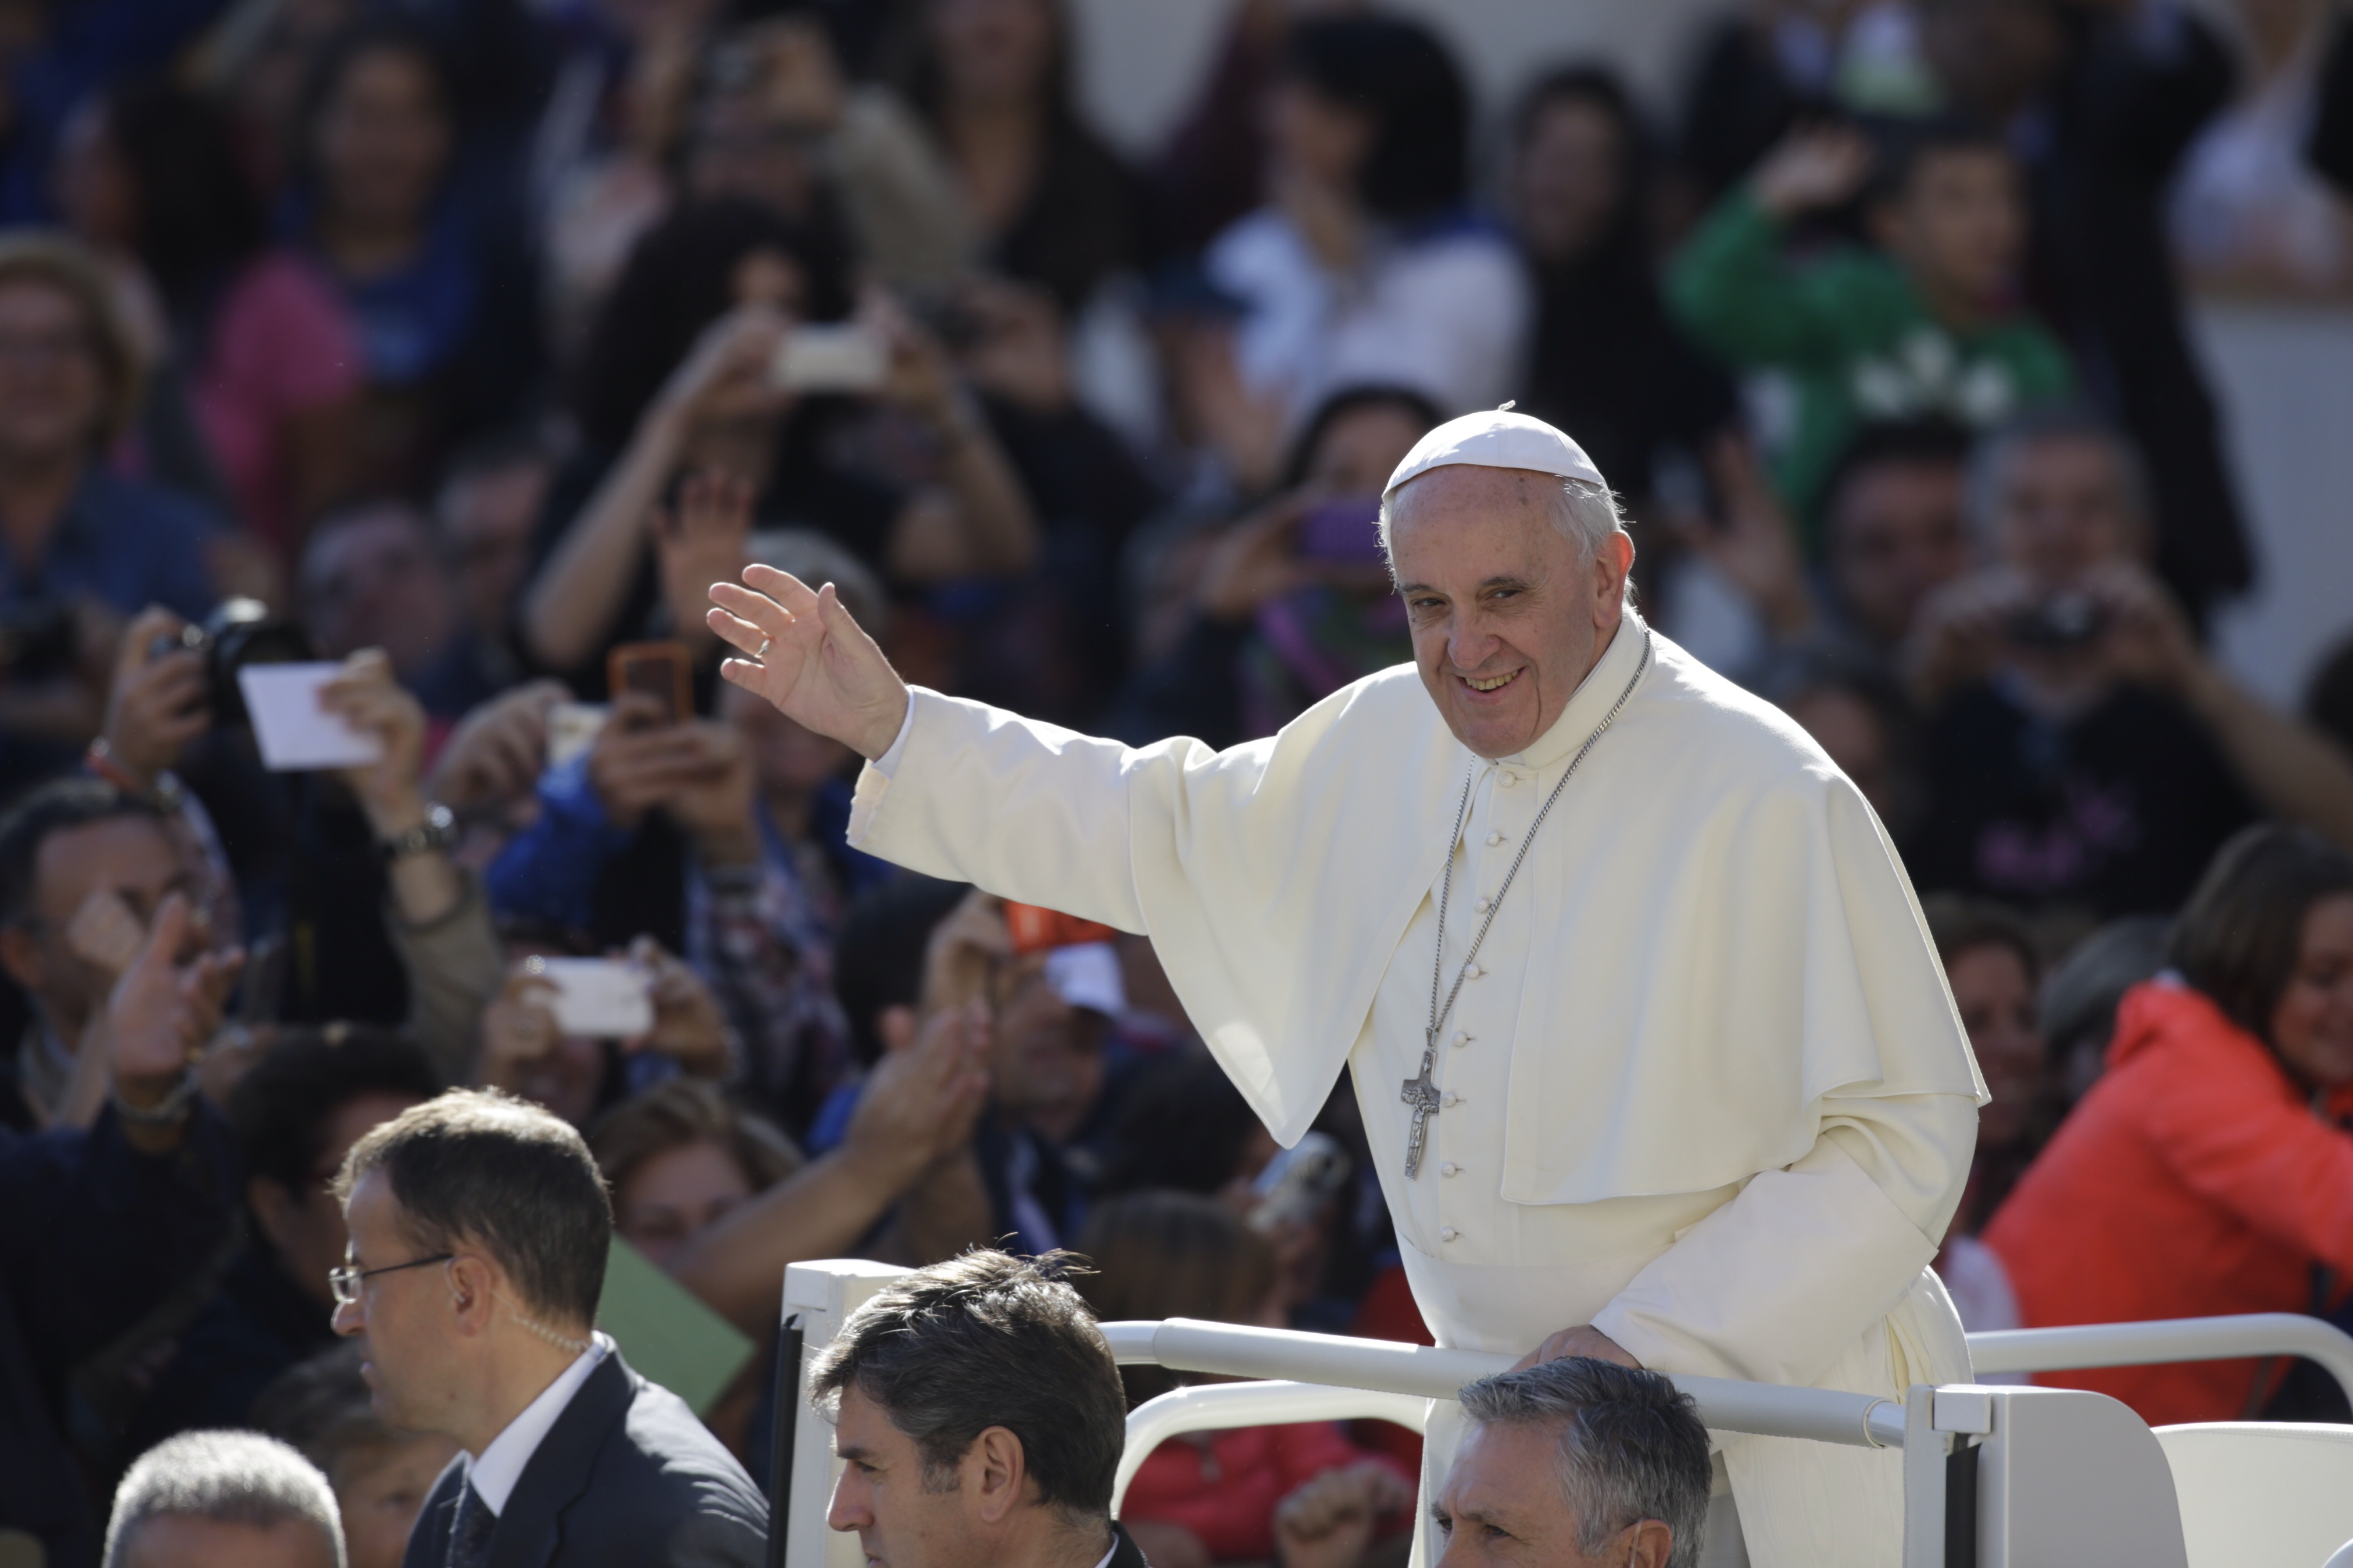 Pope Francis waves to faithful as he arrives for his weekly general audience at the Vatican, Wednesday, Oct. 2, 2013. (AP Photo/Andrew Medichini)